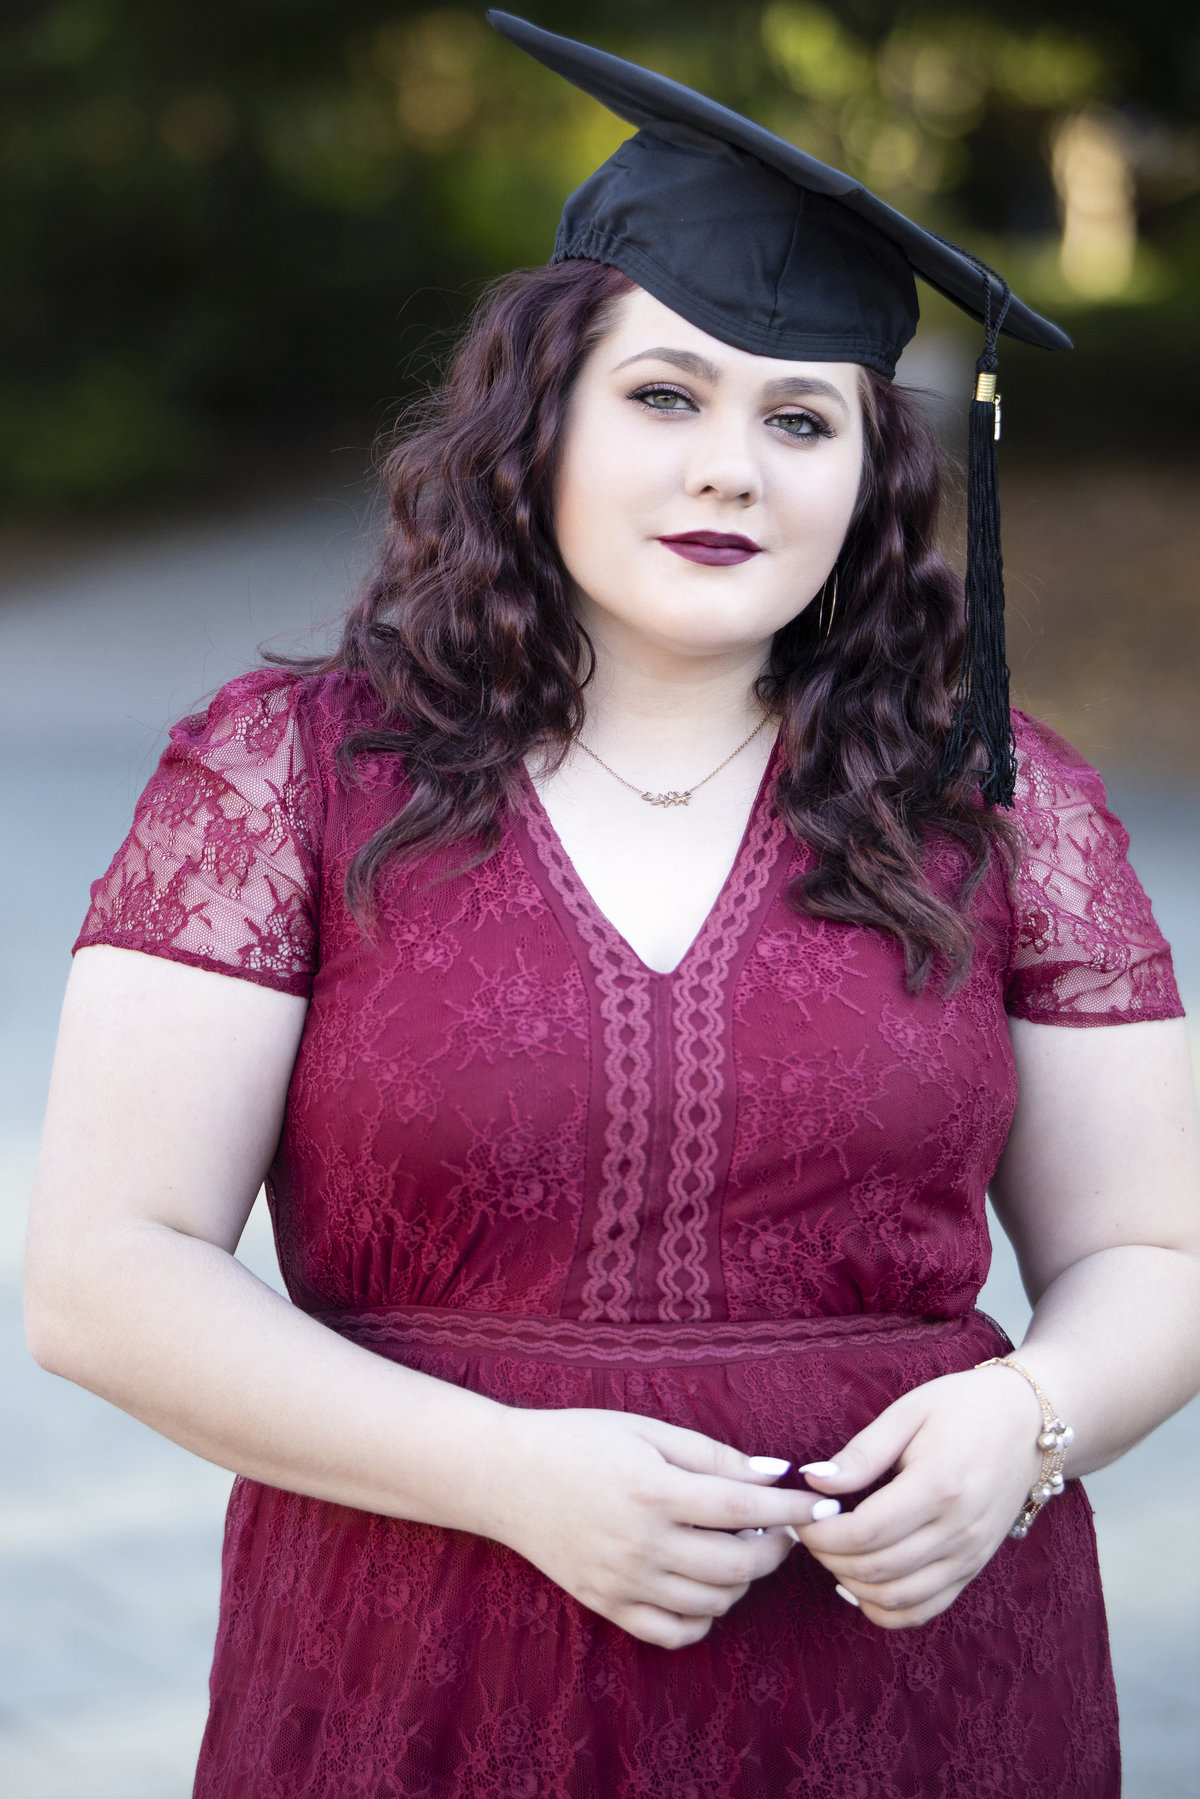 college_senior_photographer_milledgeville_georgia_cap_gown_jlfarmer3